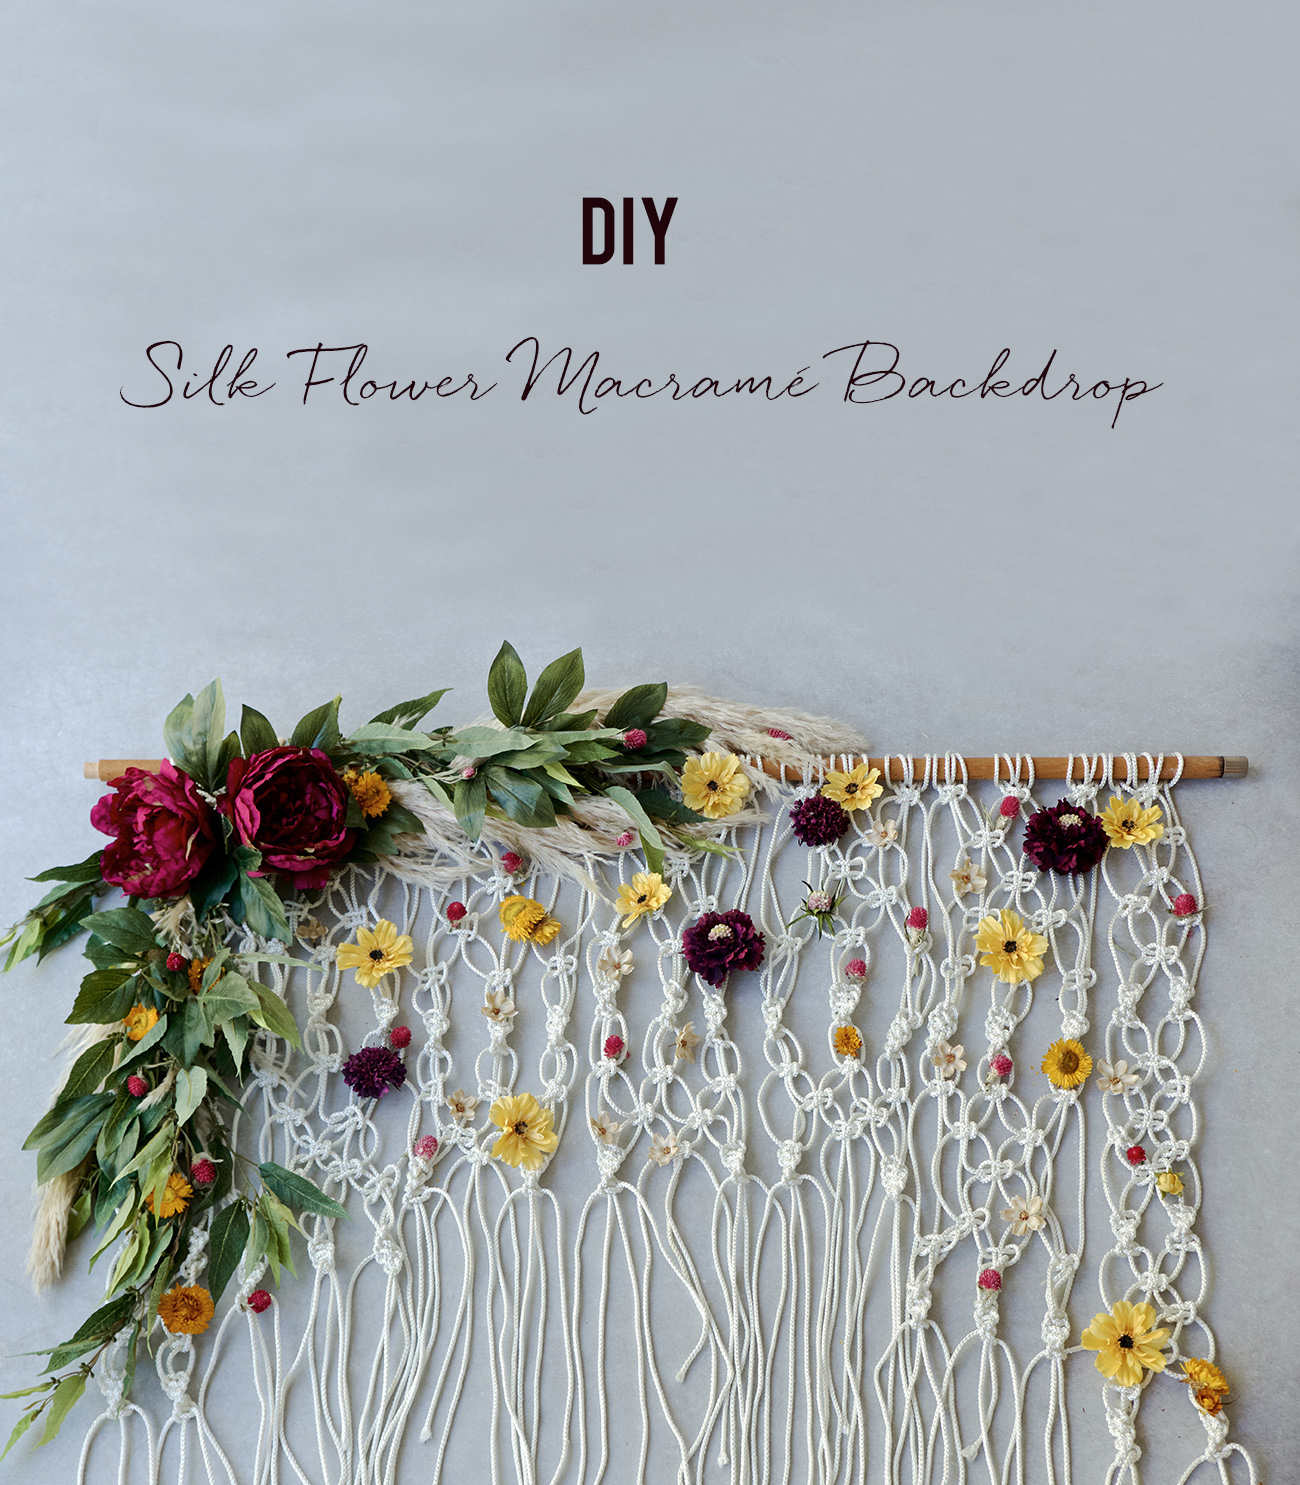 diy silk flower macrame backdrop